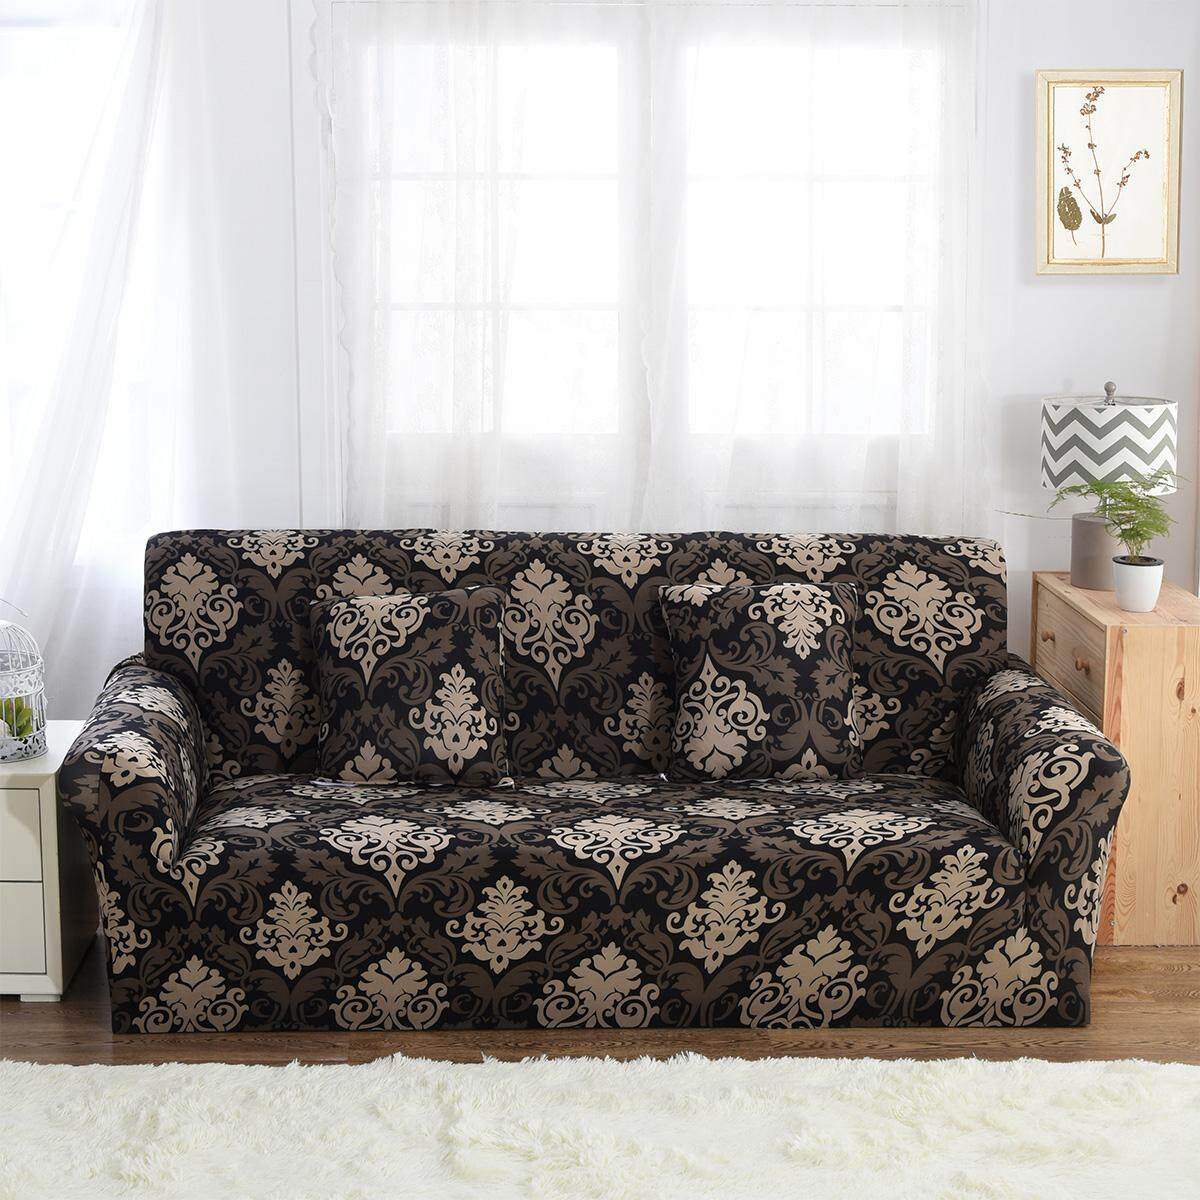 4 Seater Home Soft Elastic Sofa Cover Easy Stretch Slipcover Protector Couch